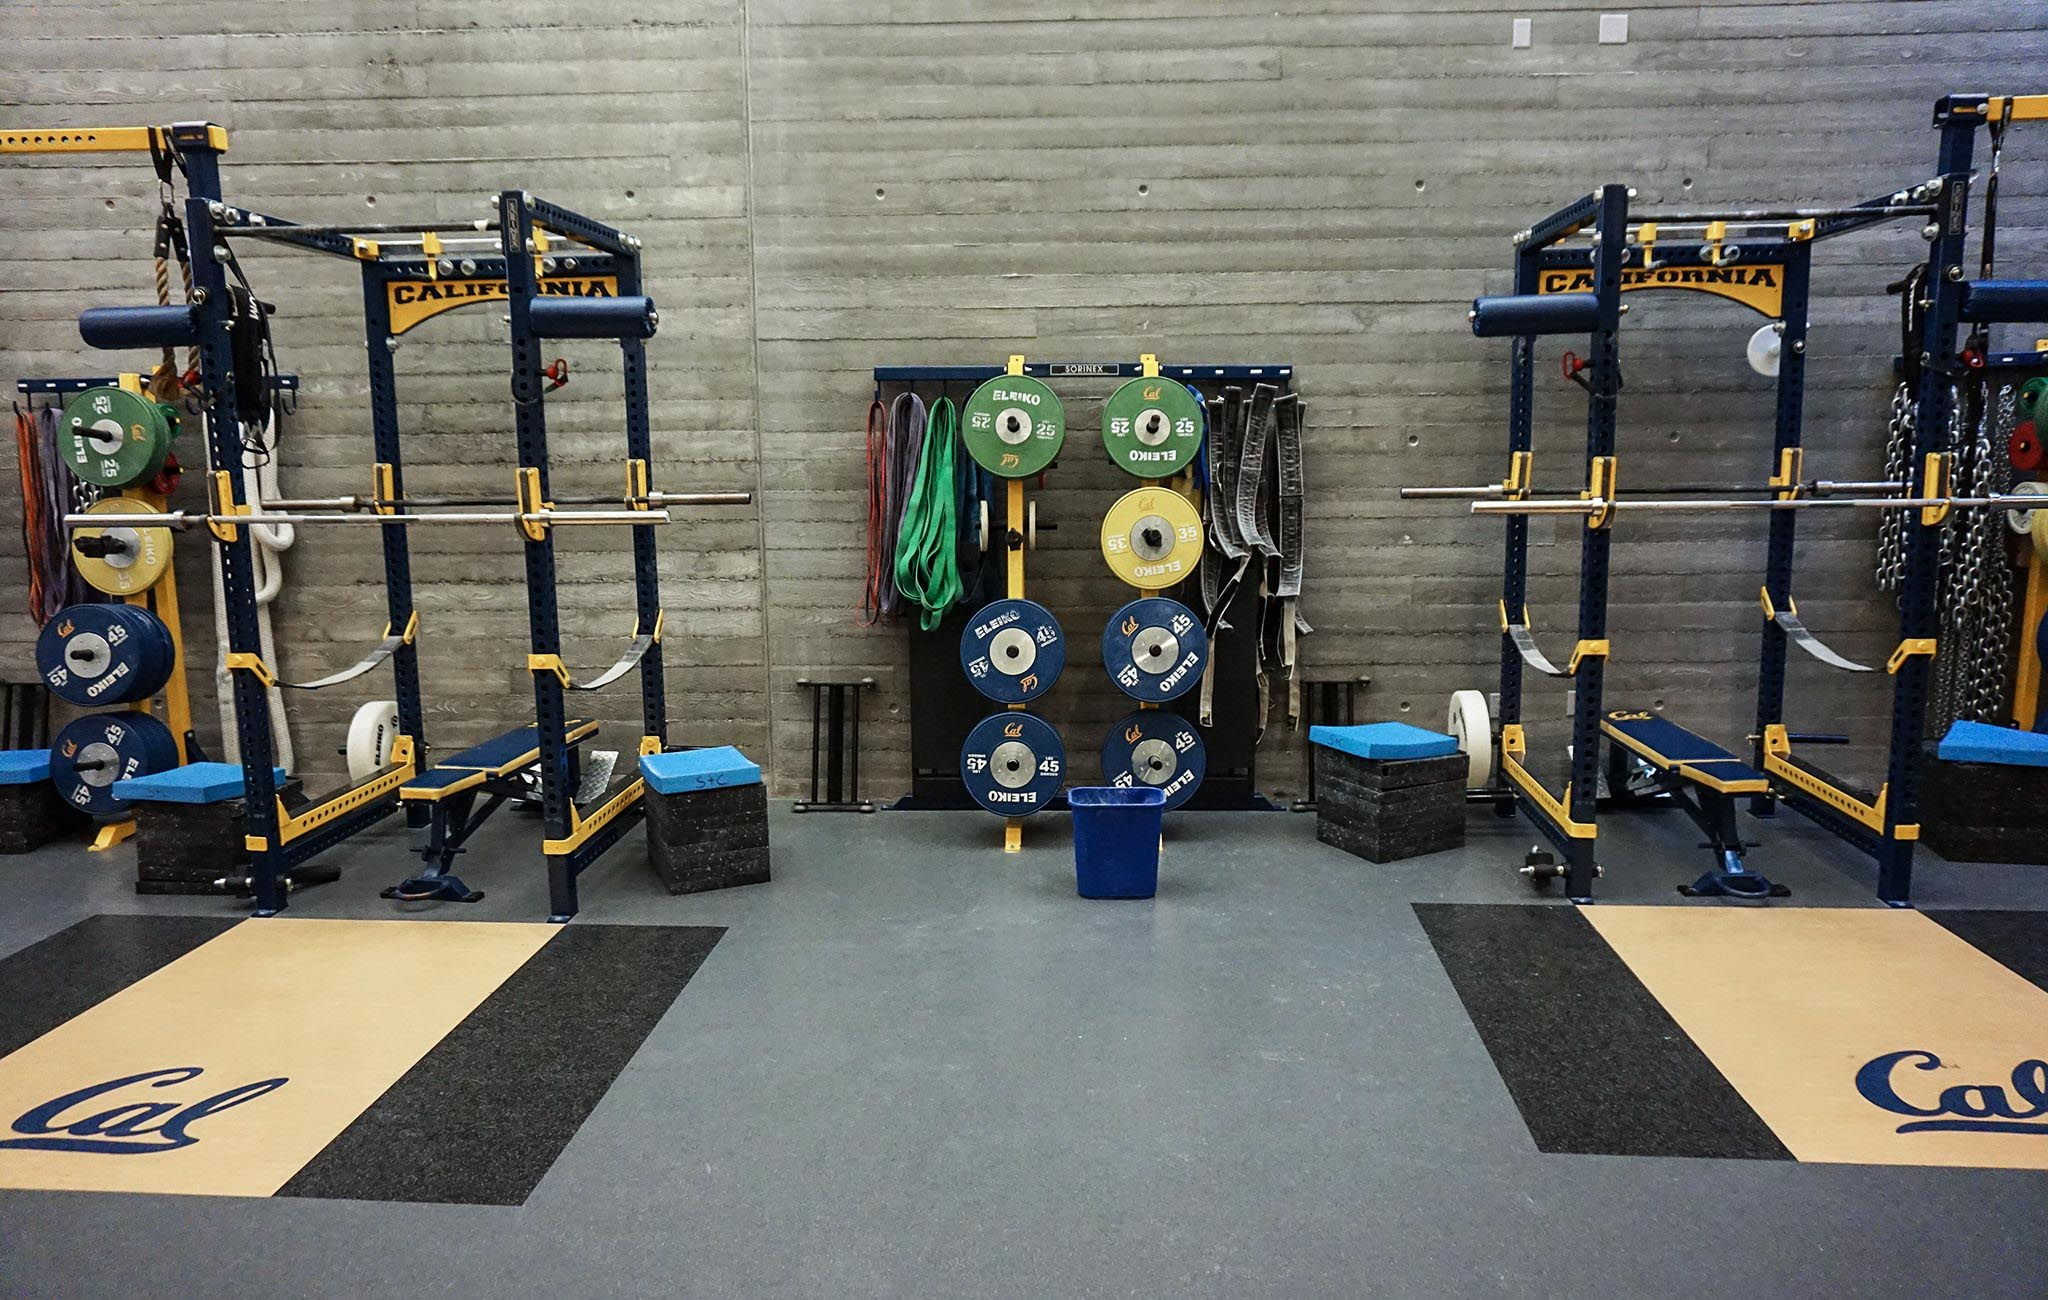 University of California Football strength and conditioning